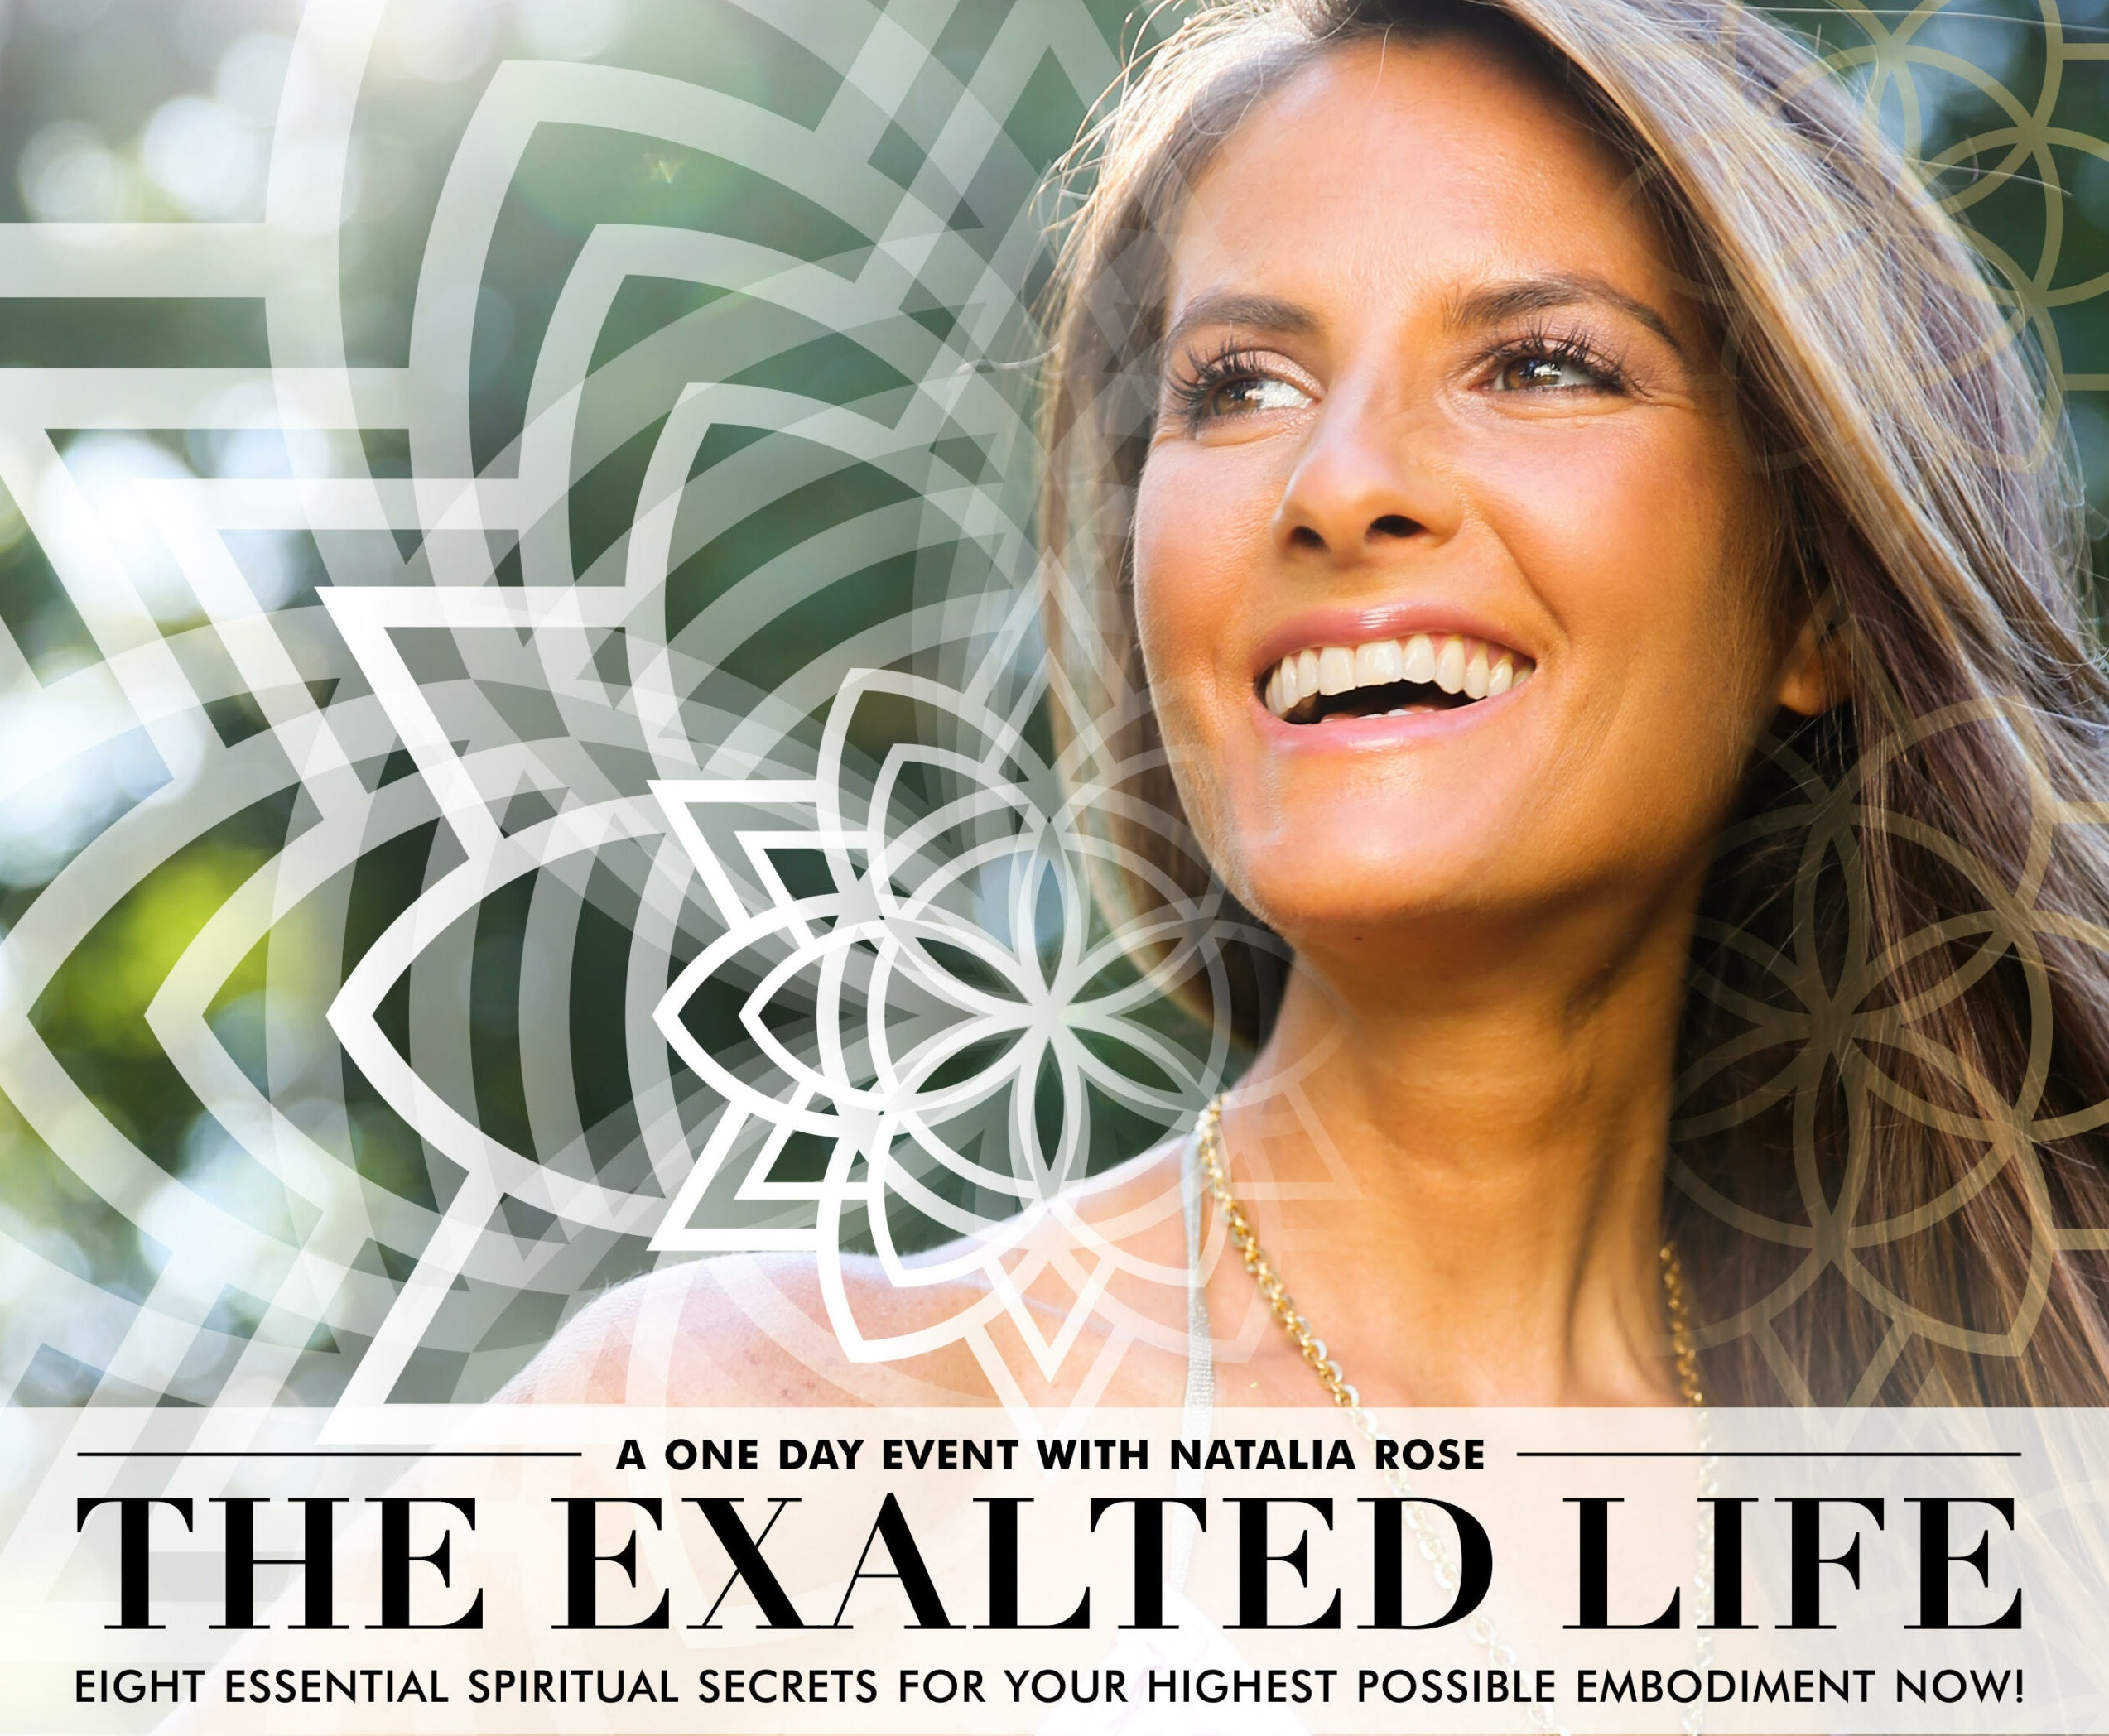 The Exalted Life